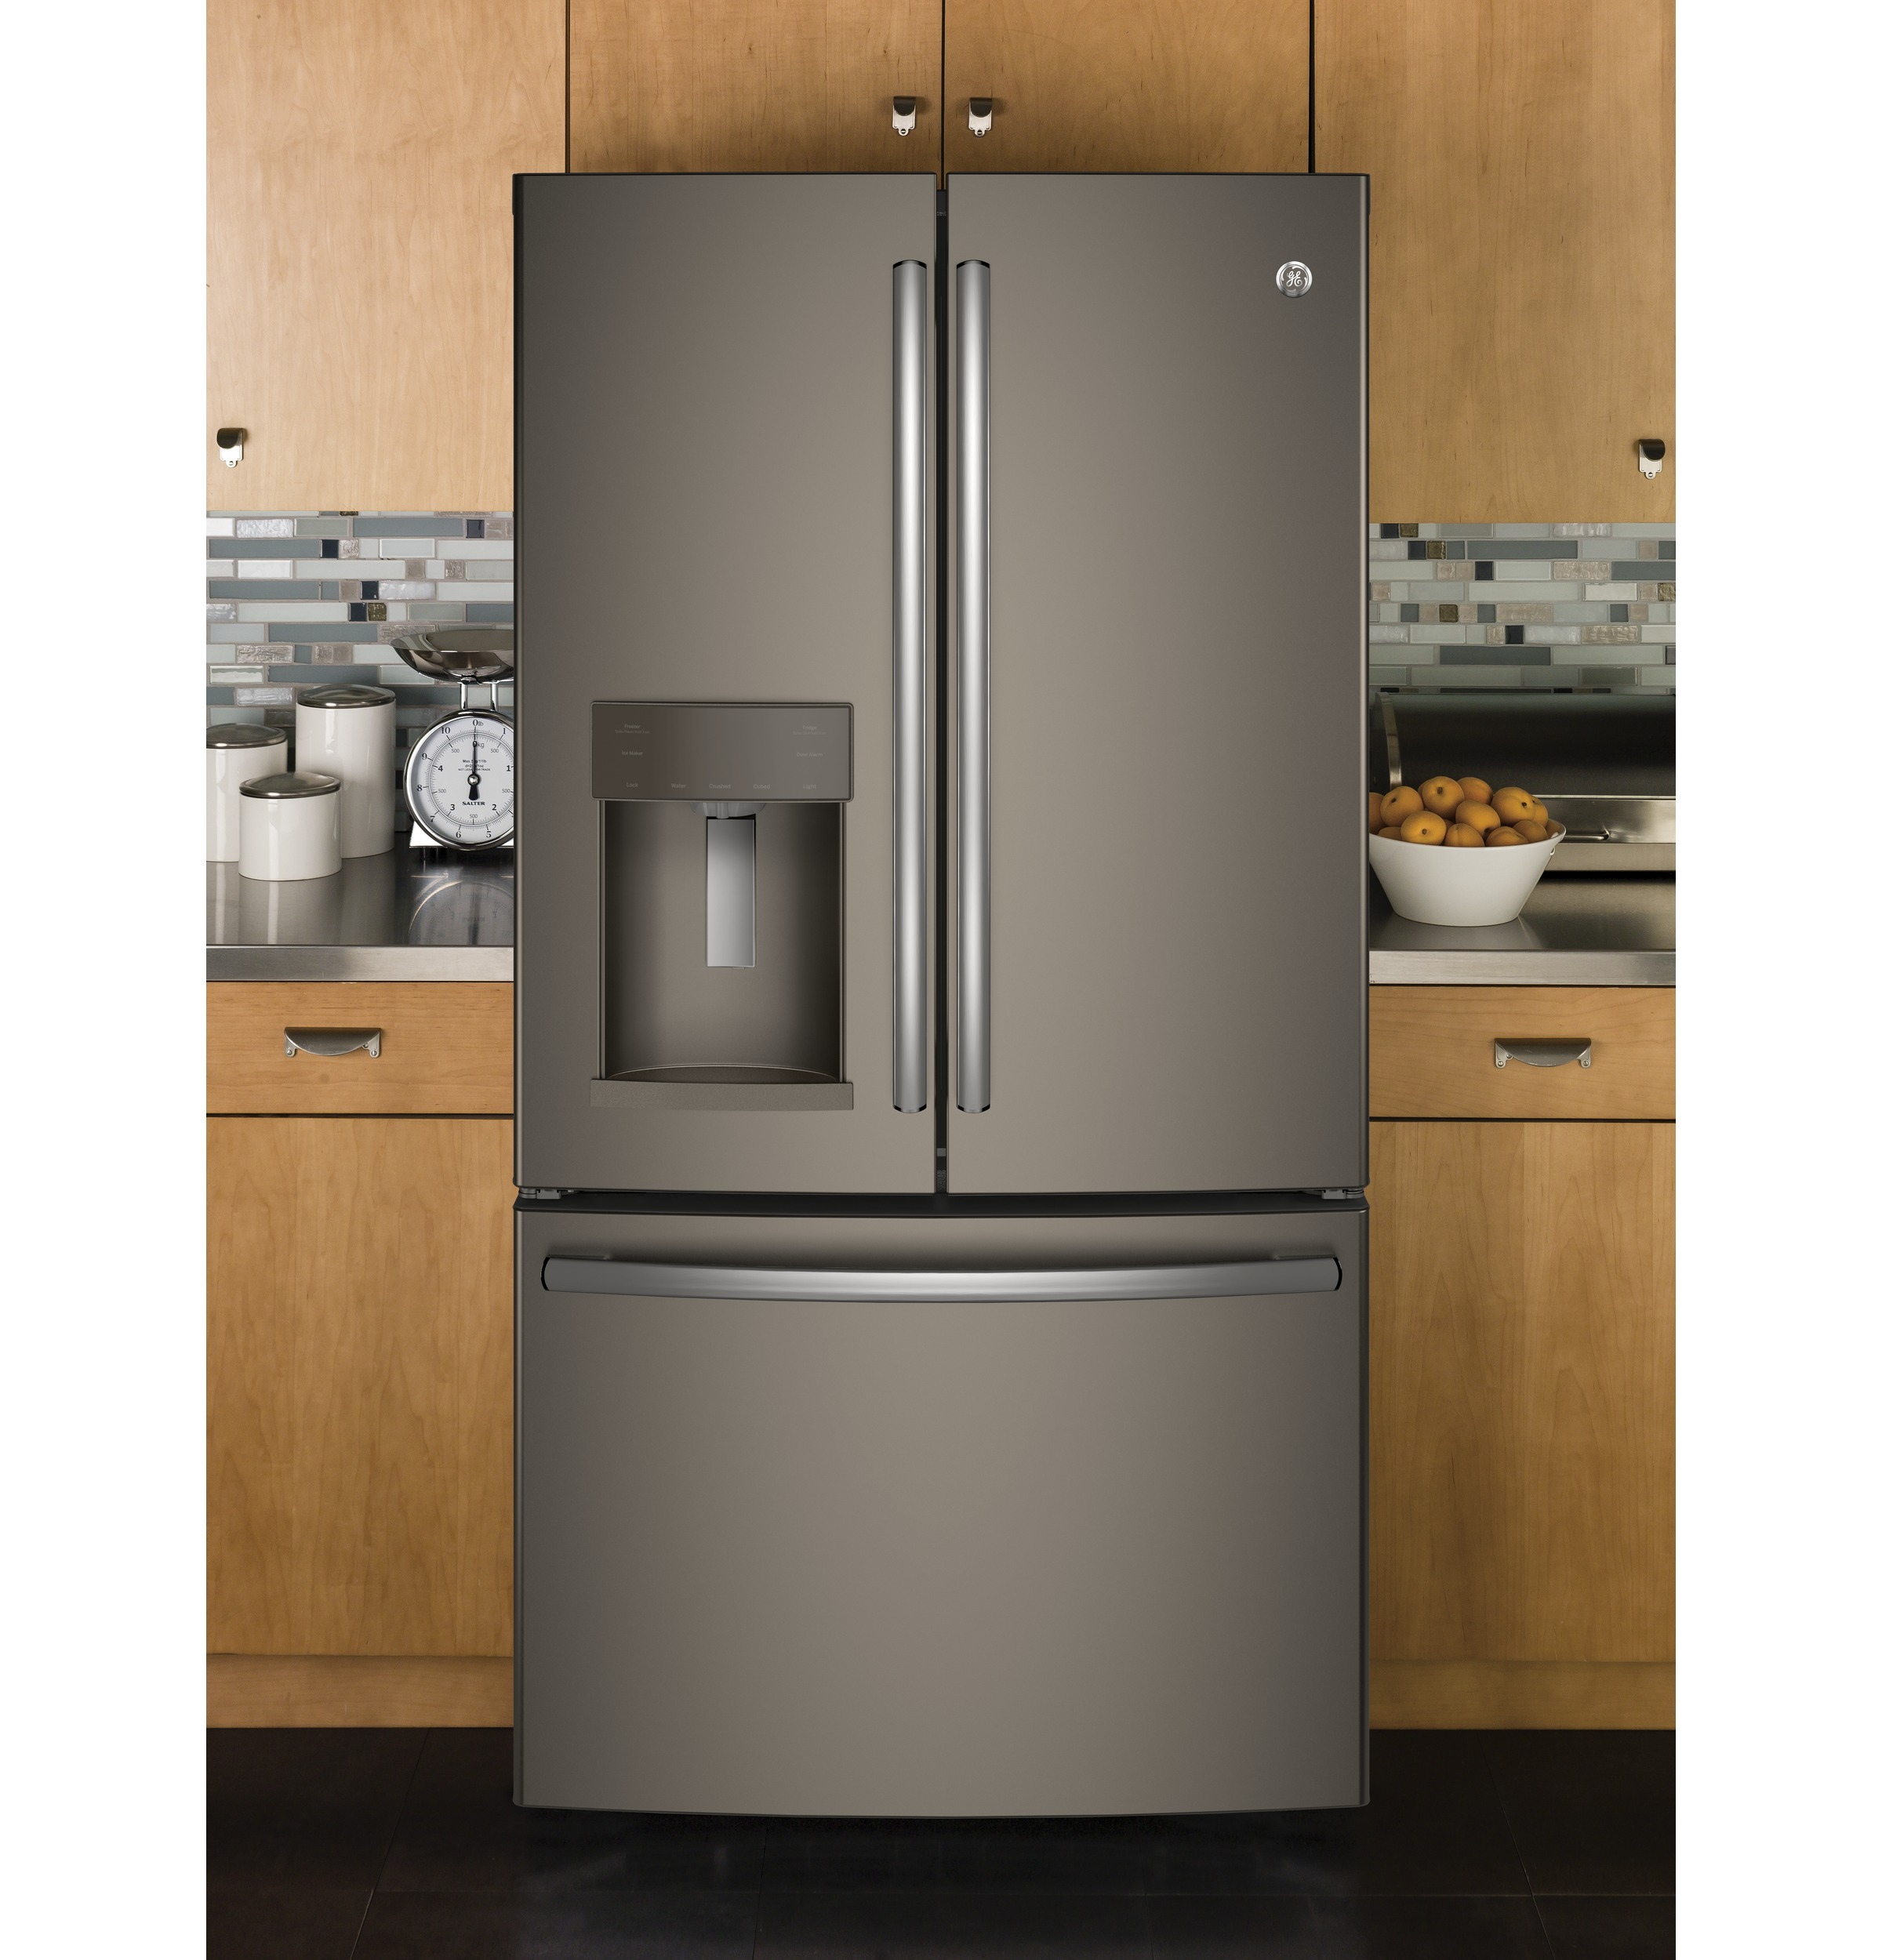 Model: GYE22HMKES | GE GE® ENERGY STAR® 22.2 Cu. Ft. Counter-Depth French-Door Refrigerator